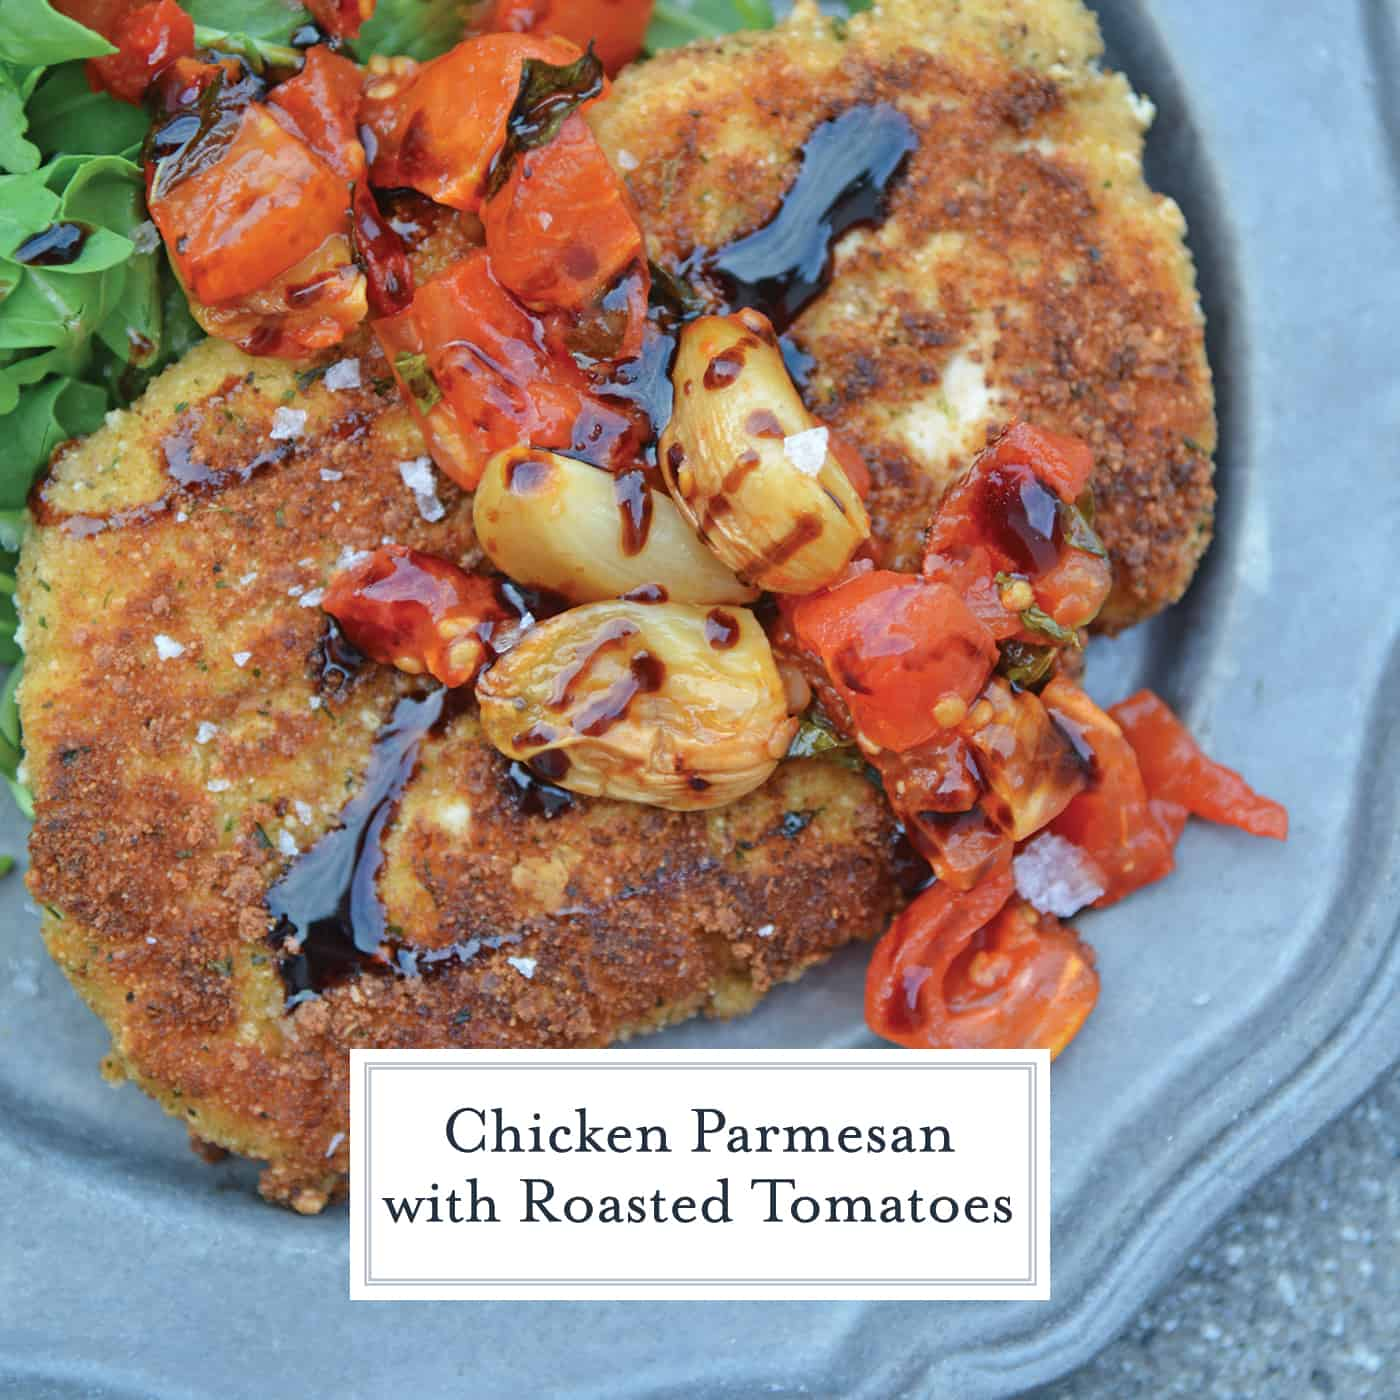 Chicken Parmesan with Roasted Tomatoes is an amazing way to make chicken parmesan because it comes with a savory roasted tomato sauce! #chickenparmesan #roastedtomatosauce www.savoryexperiments.com